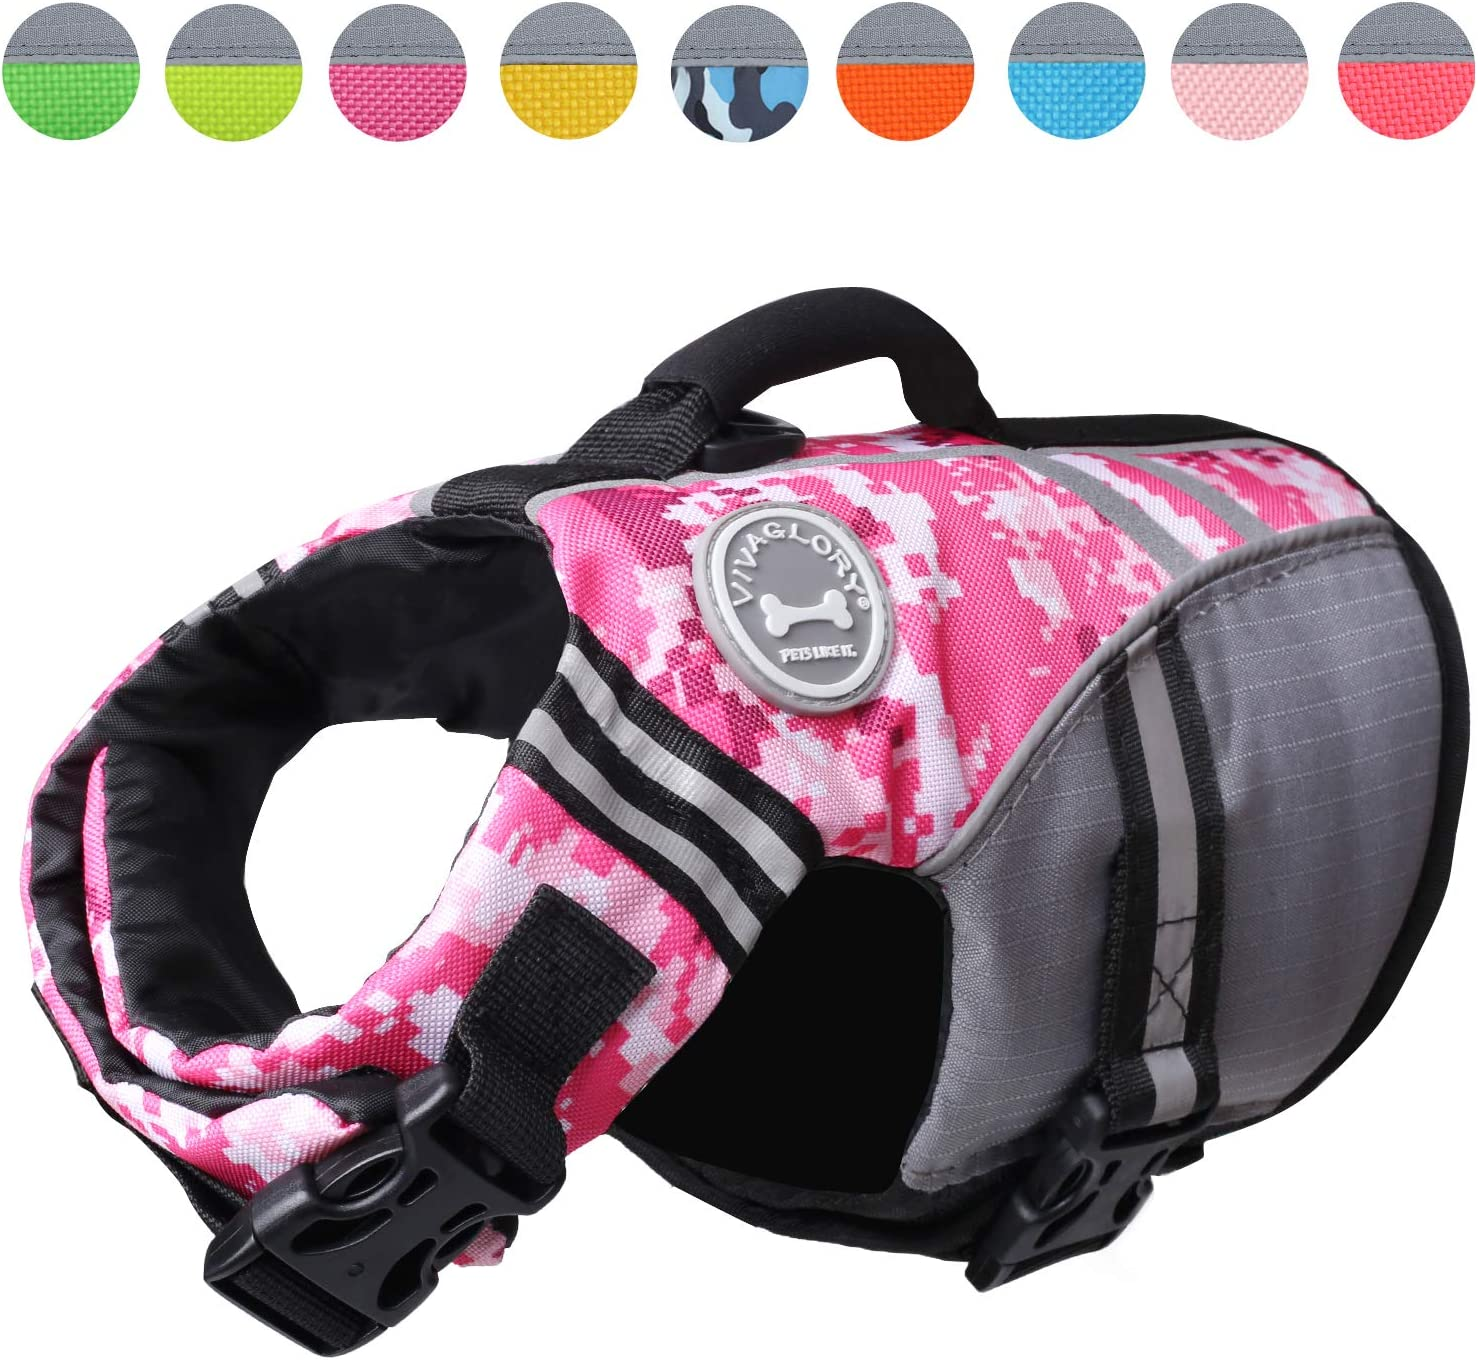 VIVAGLORY New Sports Style Ripstop Dog Life Jacket with Superior Buoyancy /& Rescue Handle Camo Blue XS